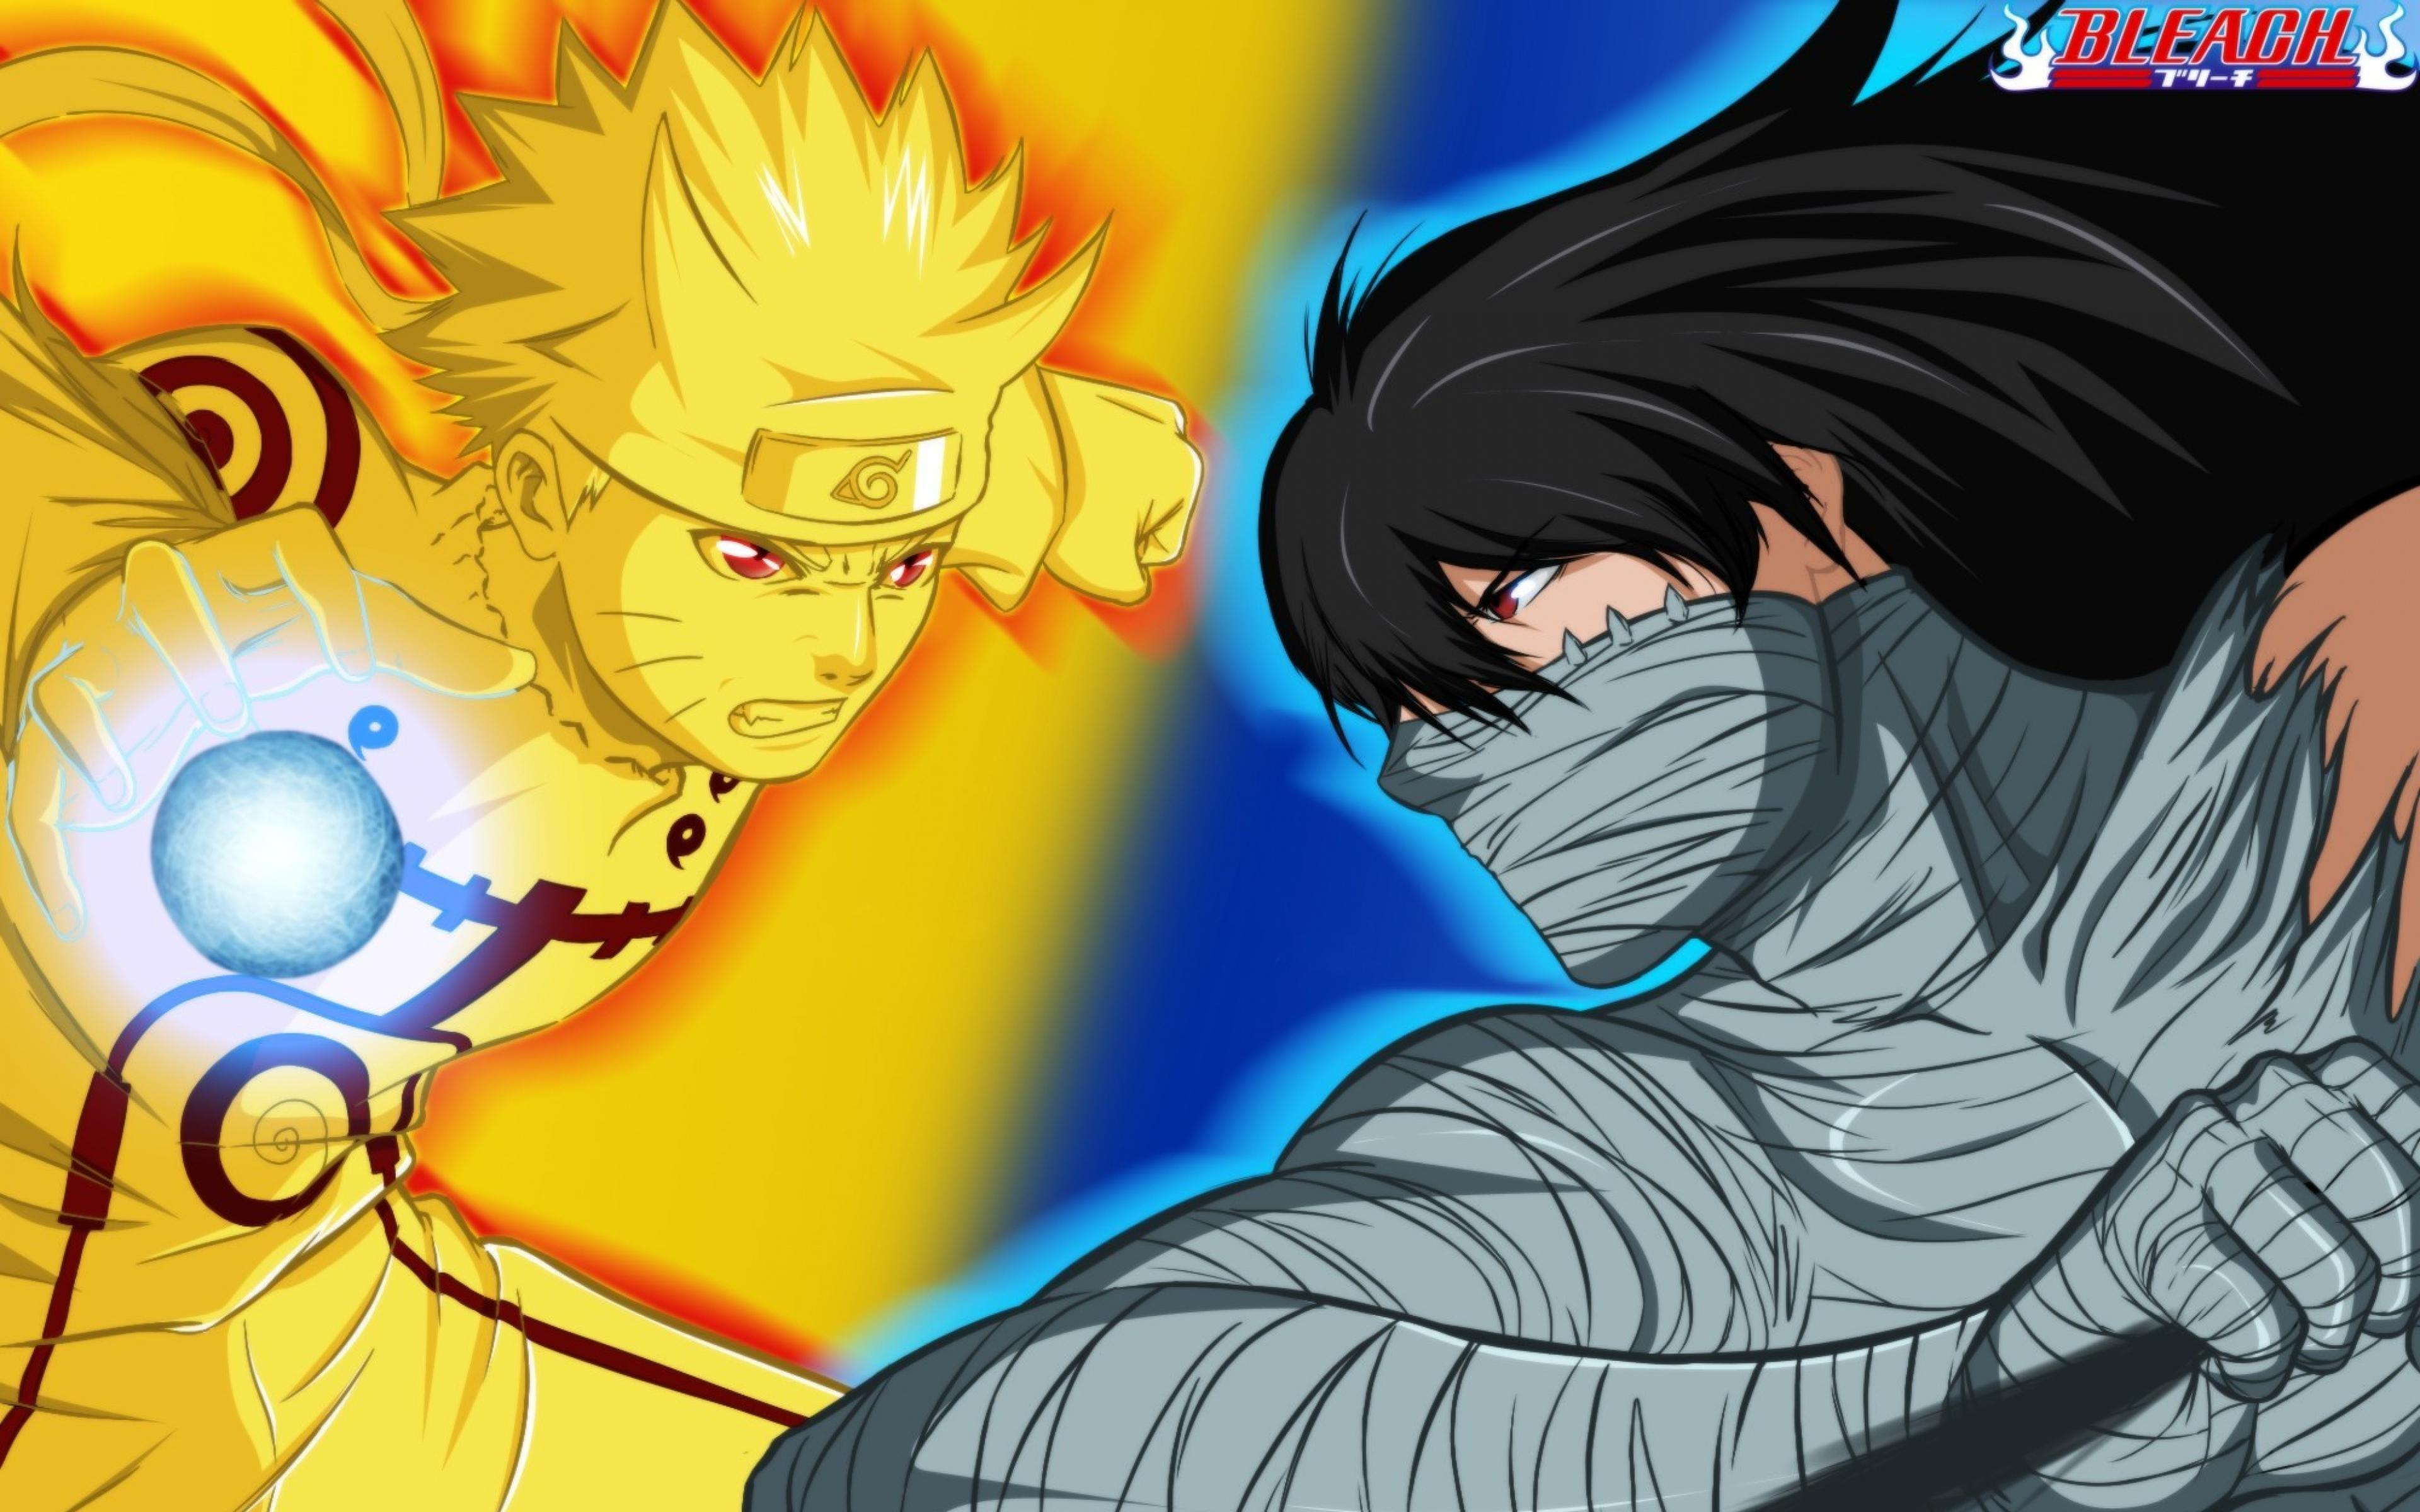 Perfect screen background display for desktop, iphone, pc, laptop, computer,. 3840x2400 Anime Naruto Wallpapers - Wallpaper Cave